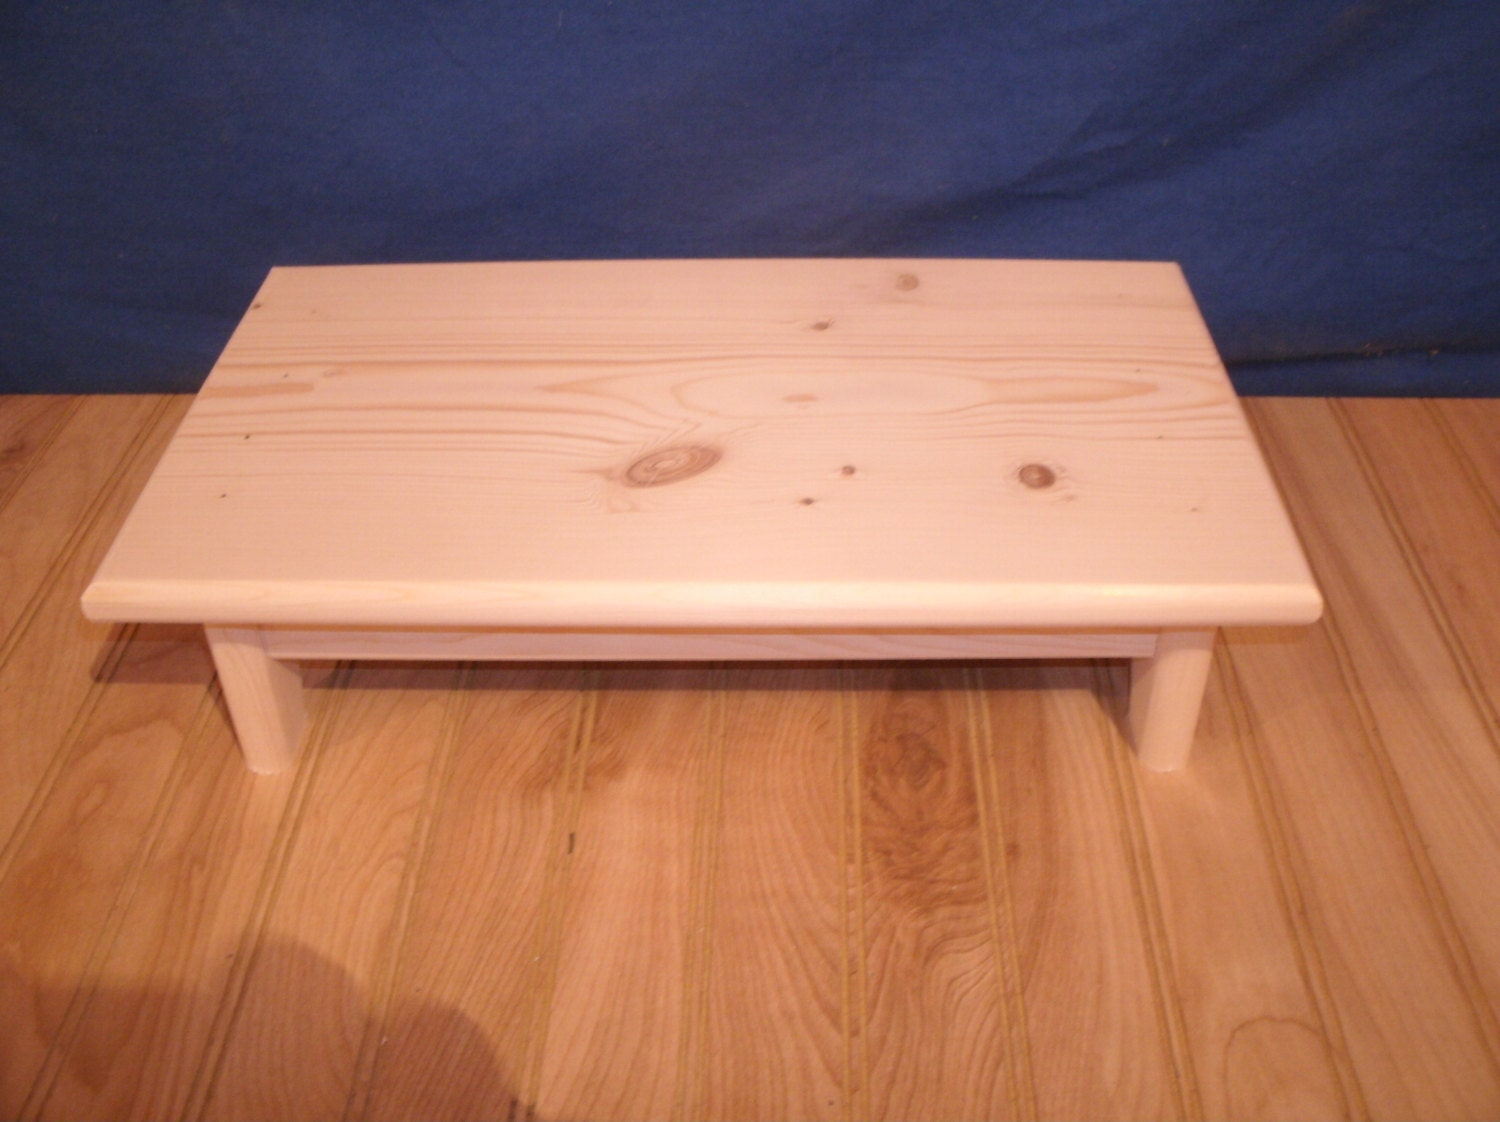 Wooden Discs For Stools ~ Wood step stool wooden unfinished pine